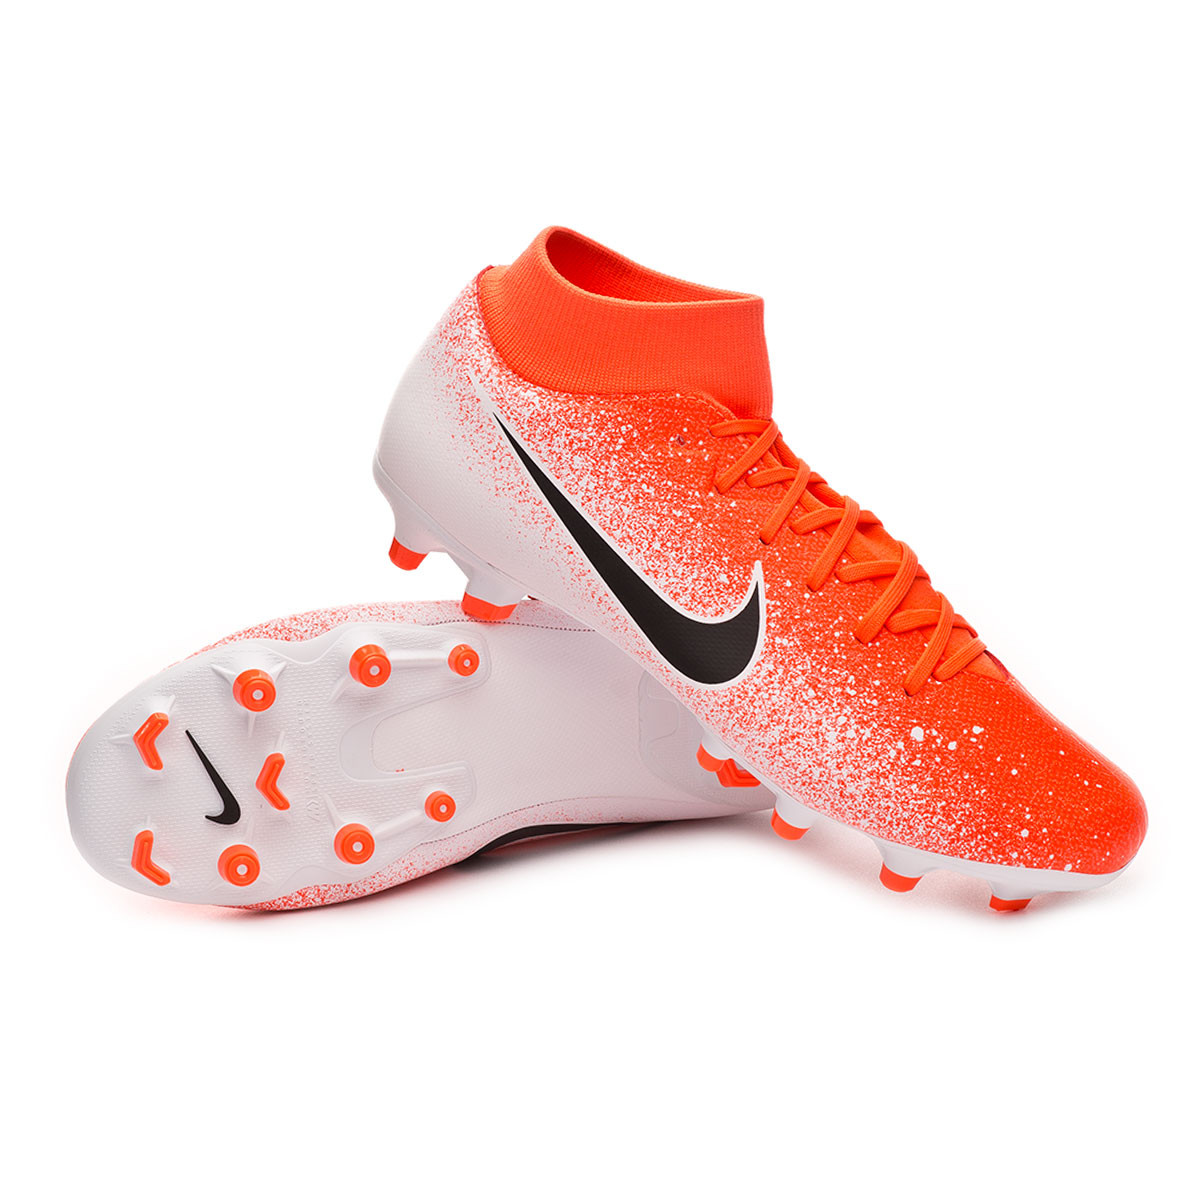 d3dc01c6dd53 Football Boots Nike Mercurial Superfly VI Academy MG Hyper crimson-Black- White - Football store Fútbol Emotion